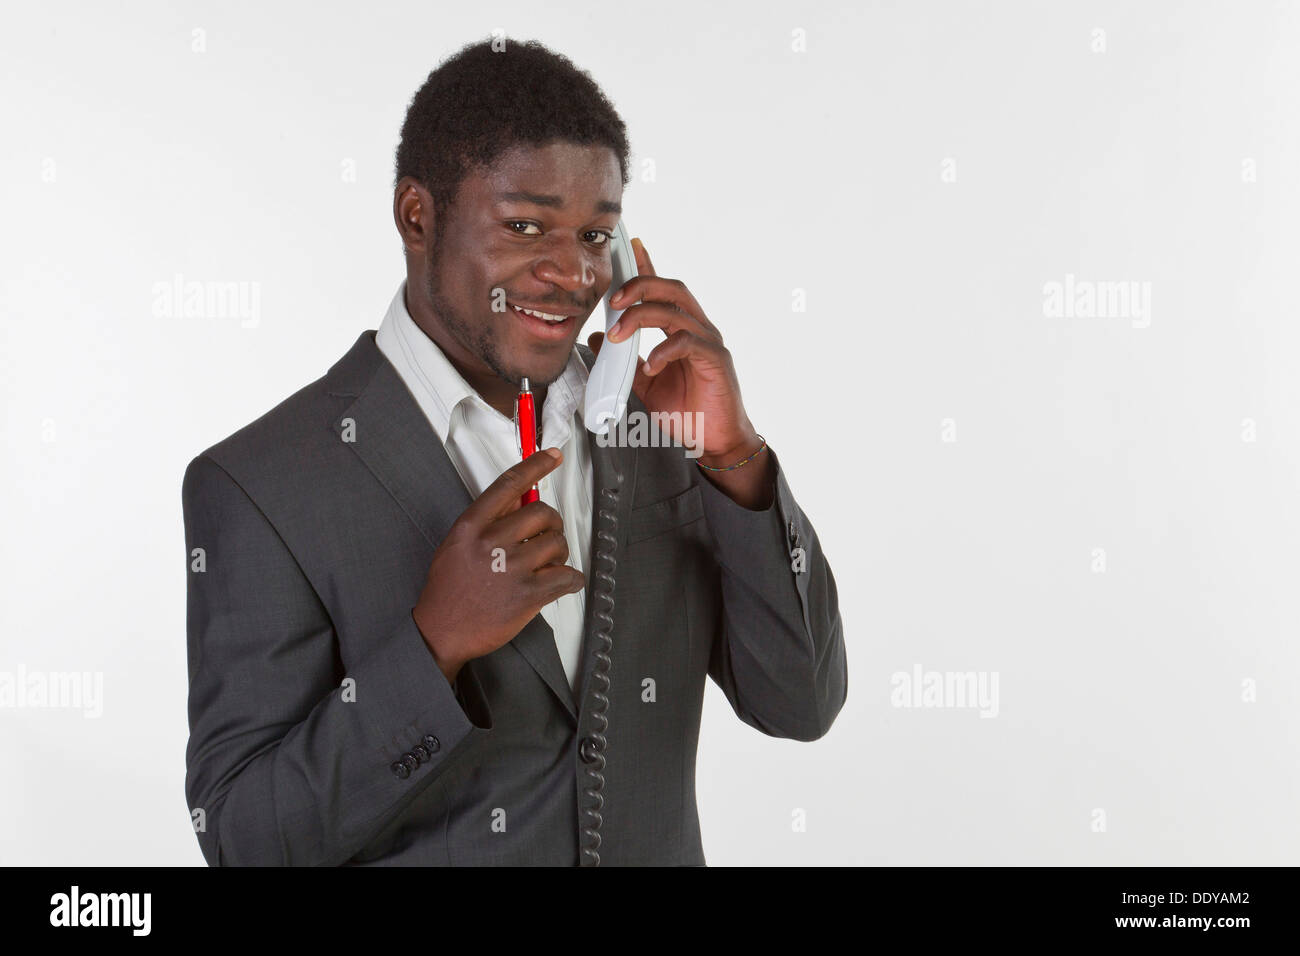 black single men in telephone Why join blacksinglescom finding someone and falling in love is hard at best we hope to make your search easier at blacksinglescom we bring single black women and men together in an.